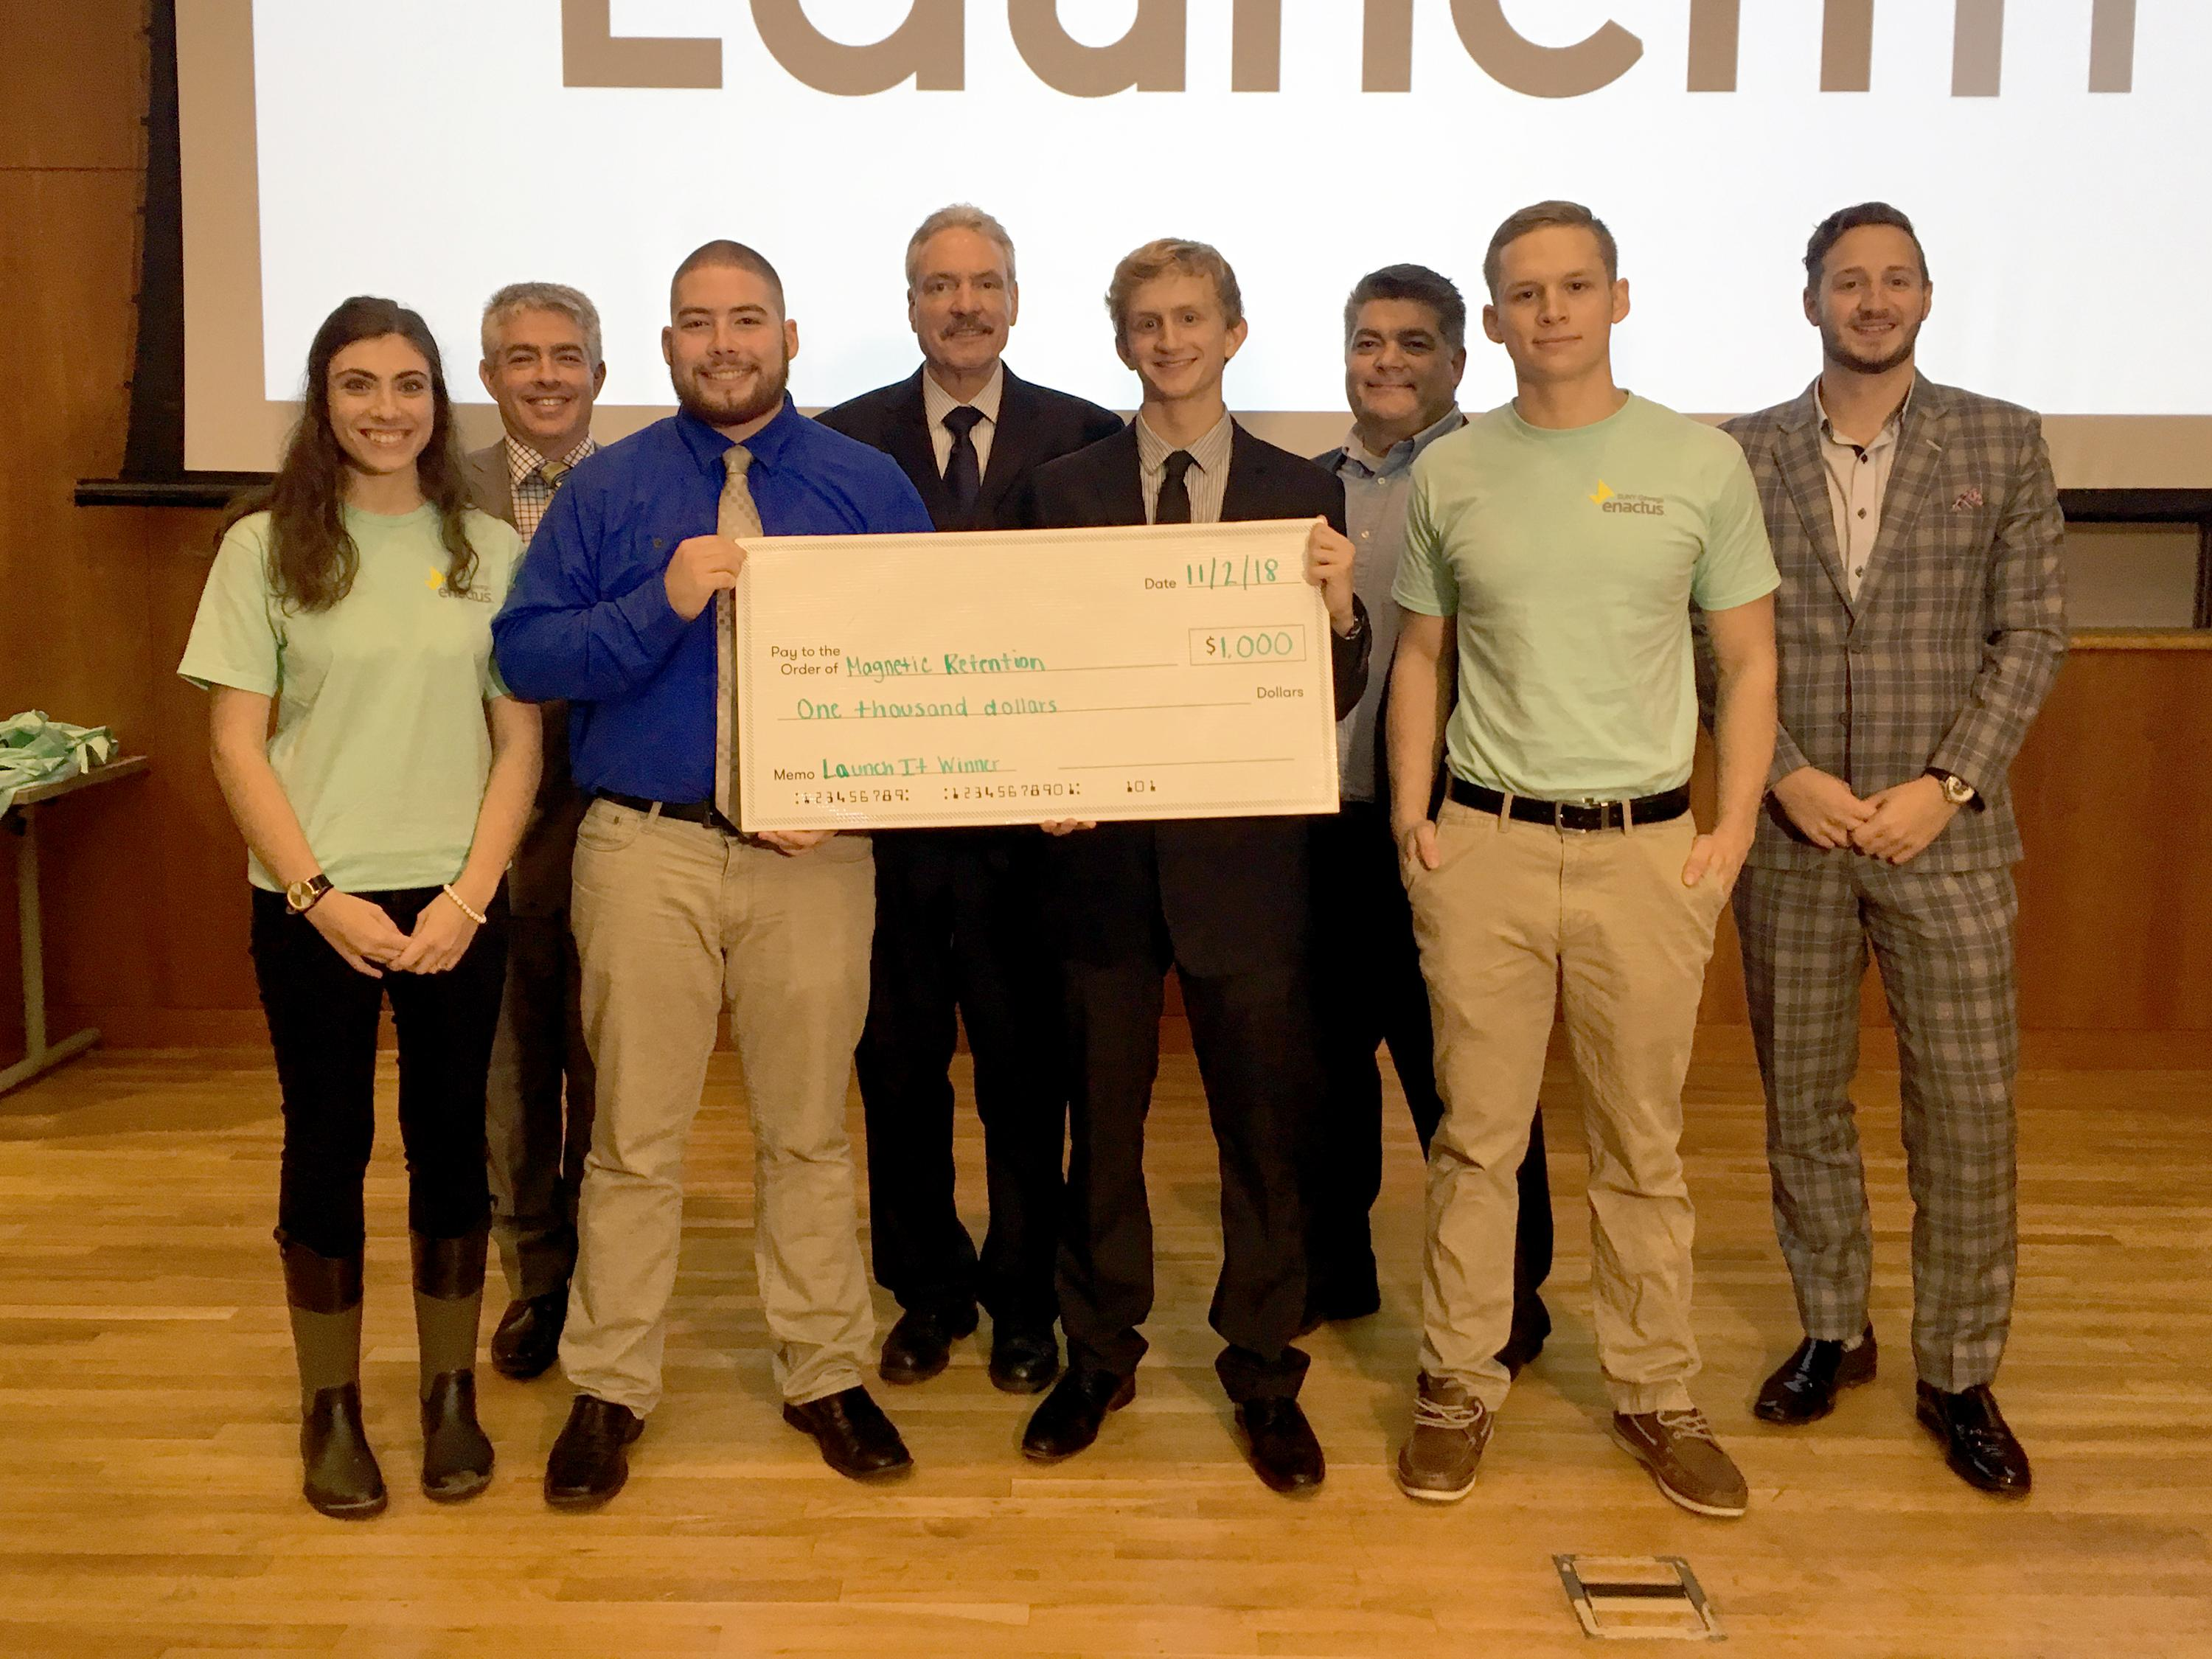 Winners and judges of 2018 Launch It student startup competition